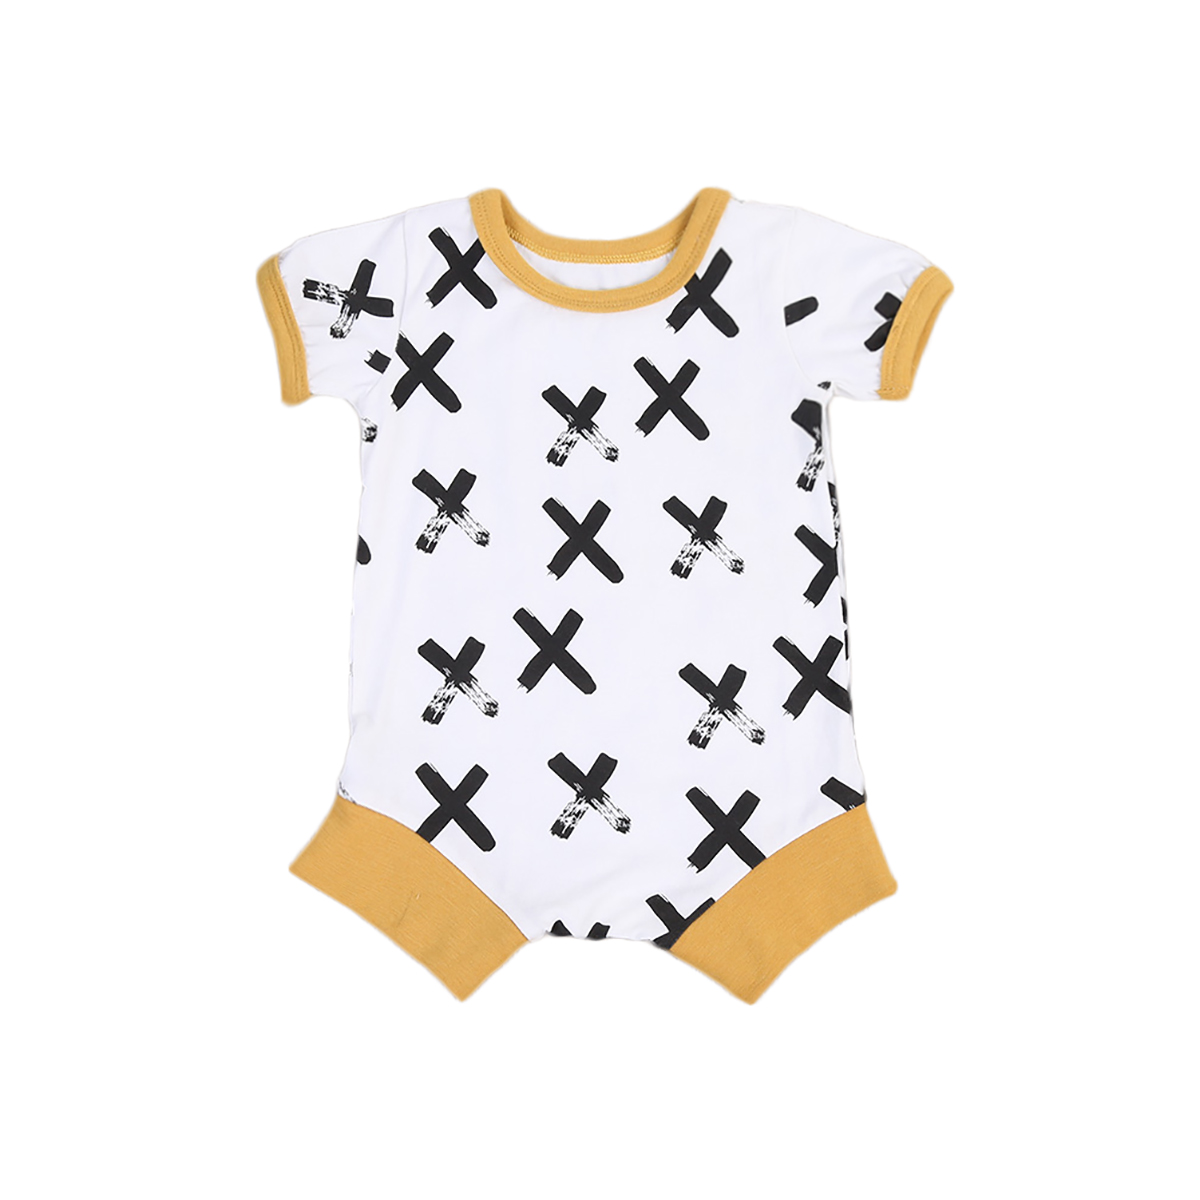 2017 Summer Rompers Newborn Baby Boy Jumper Jumpsuit Toddler Boys Short Sleeve O-Neck Playsuits Infantil Baby Outfits Clothes